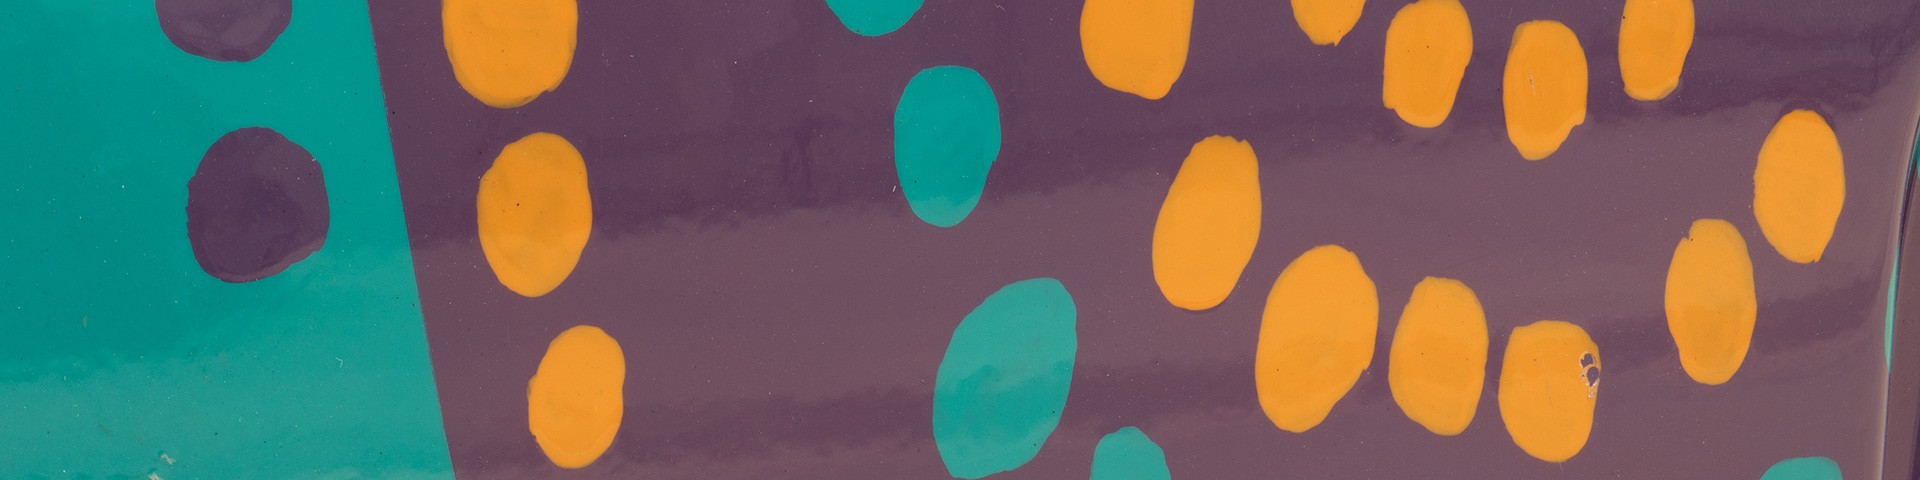 Cropped image of Wunala Dreaming design by John Moriarty, from a Twingo car, featuring teal, orange and purple dots.